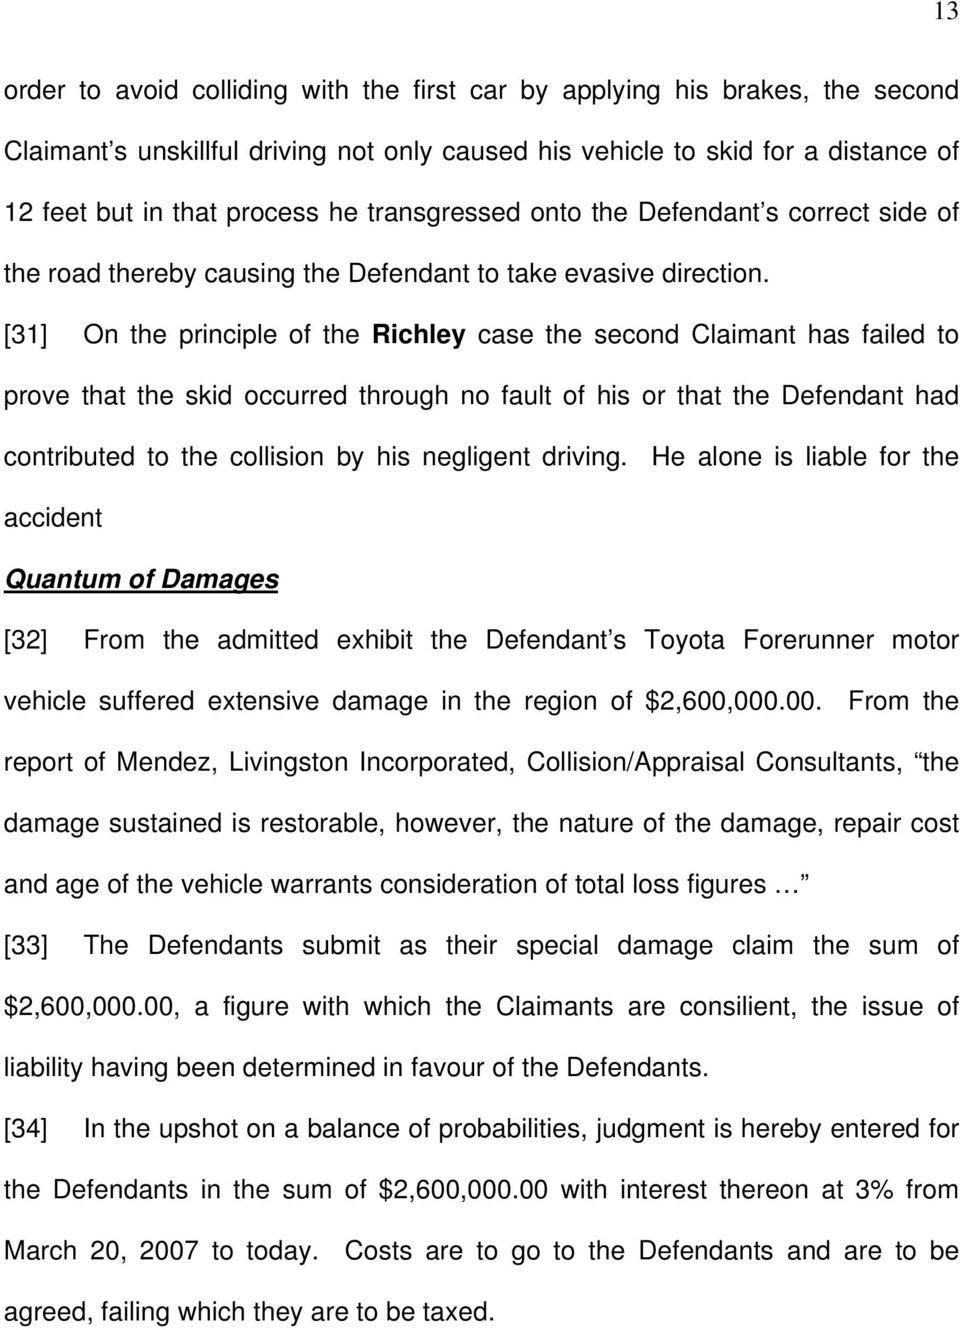 [31] On the principle of the Richley case the second Claimant has failed to prove that the skid occurred through no fault of his or that the Defendant had contributed to the collision by his